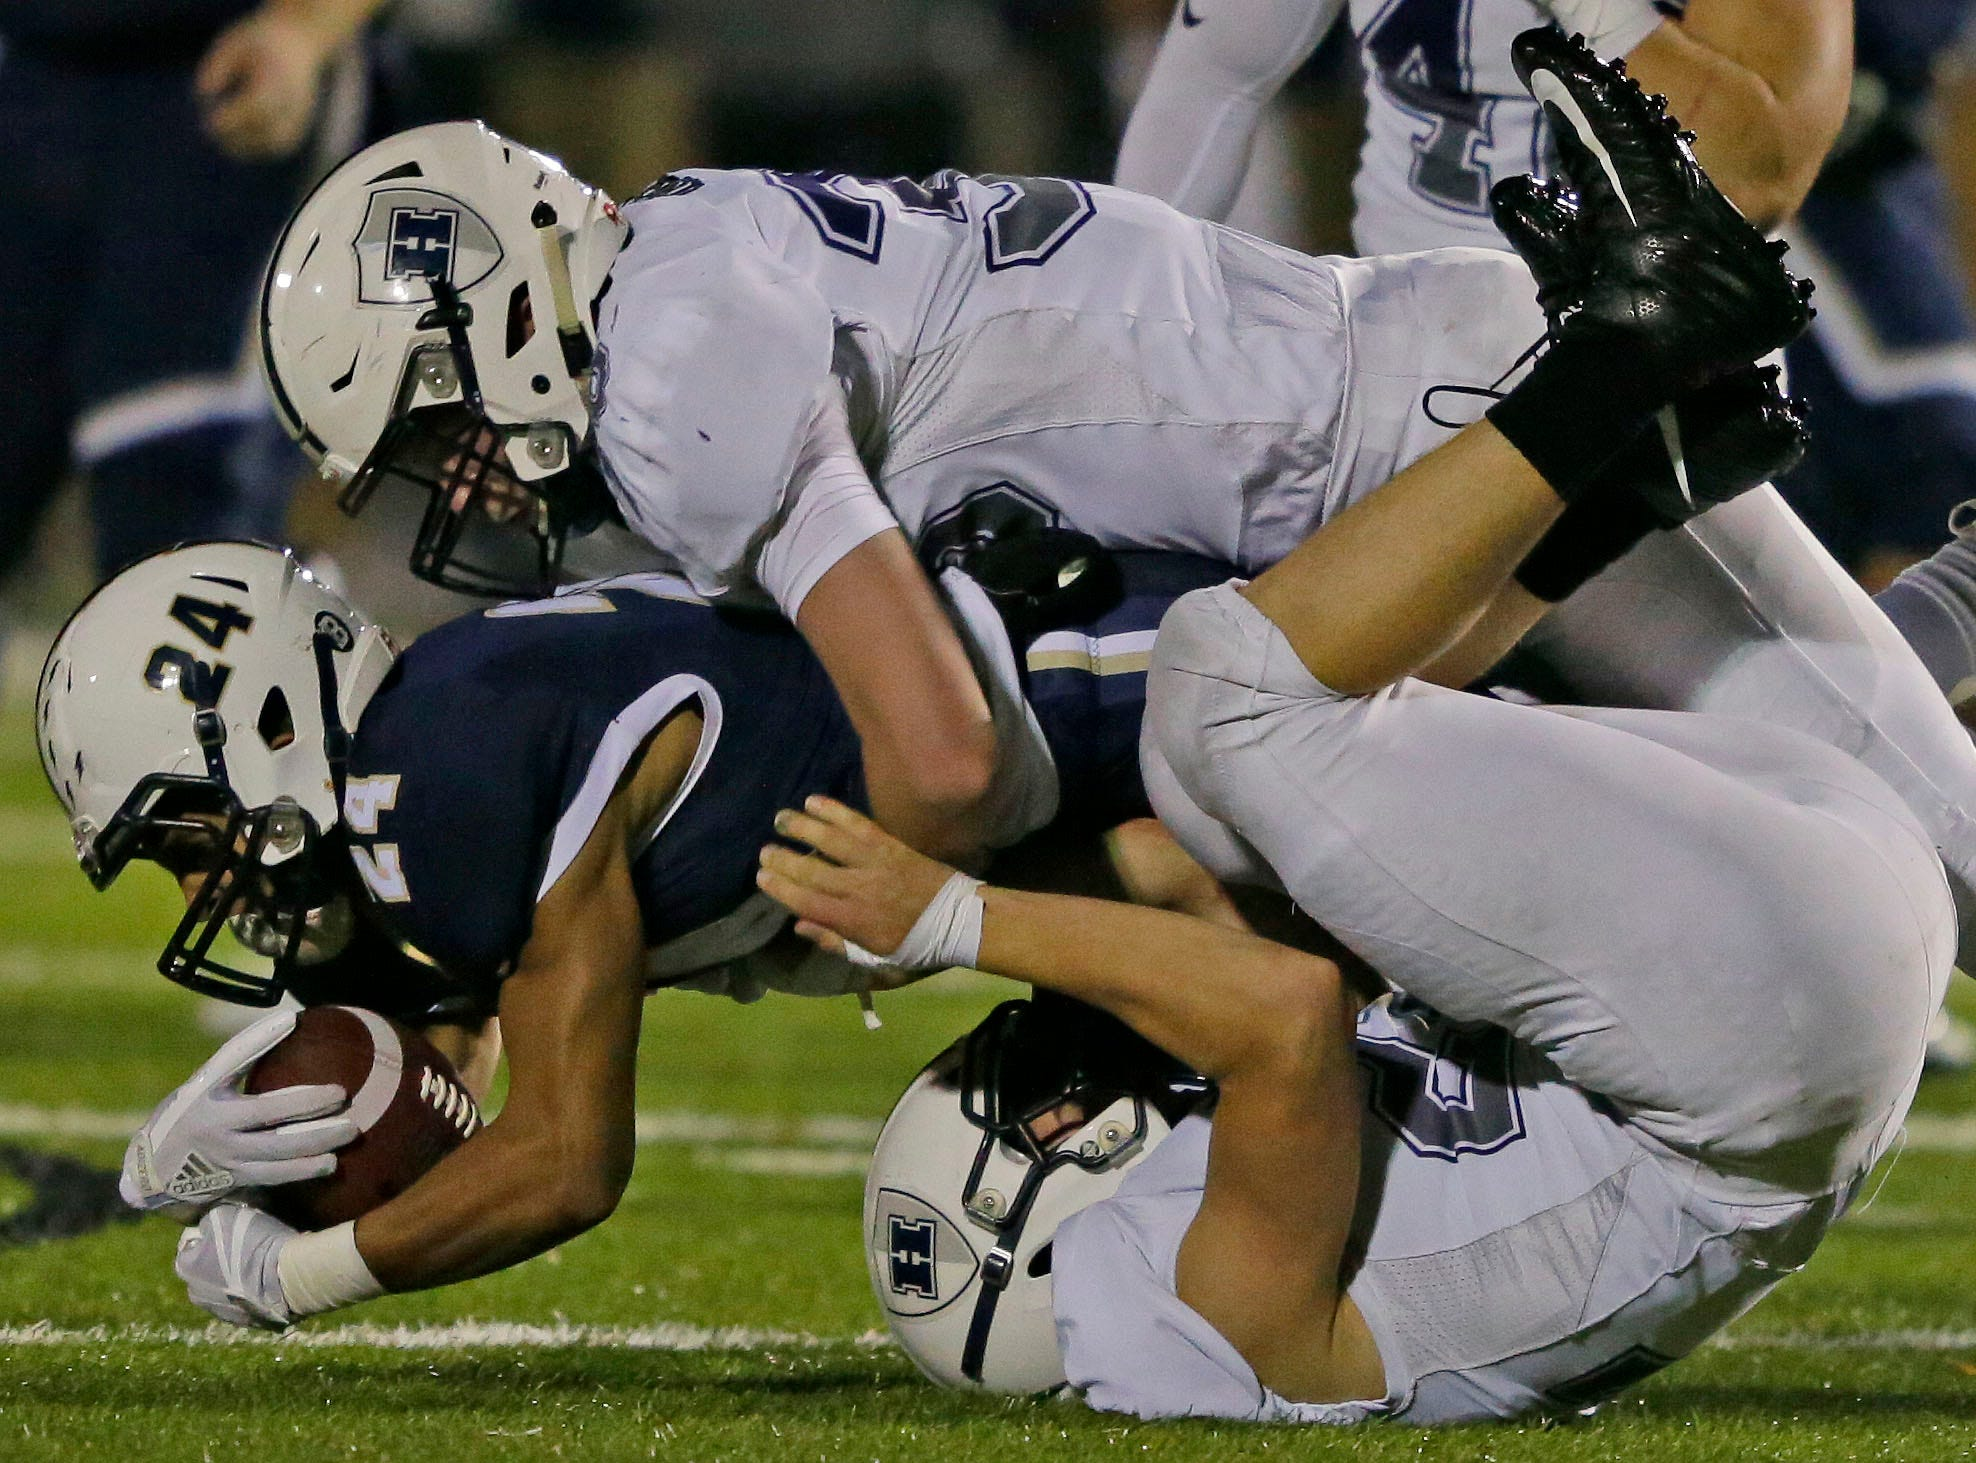 Ian Laatsch of Appleton North carries the ball against Hudson in a WIAA Division 1 football playoff game Friday, October 19, 2018, at Paul Engen Field in Appleton, Wis.